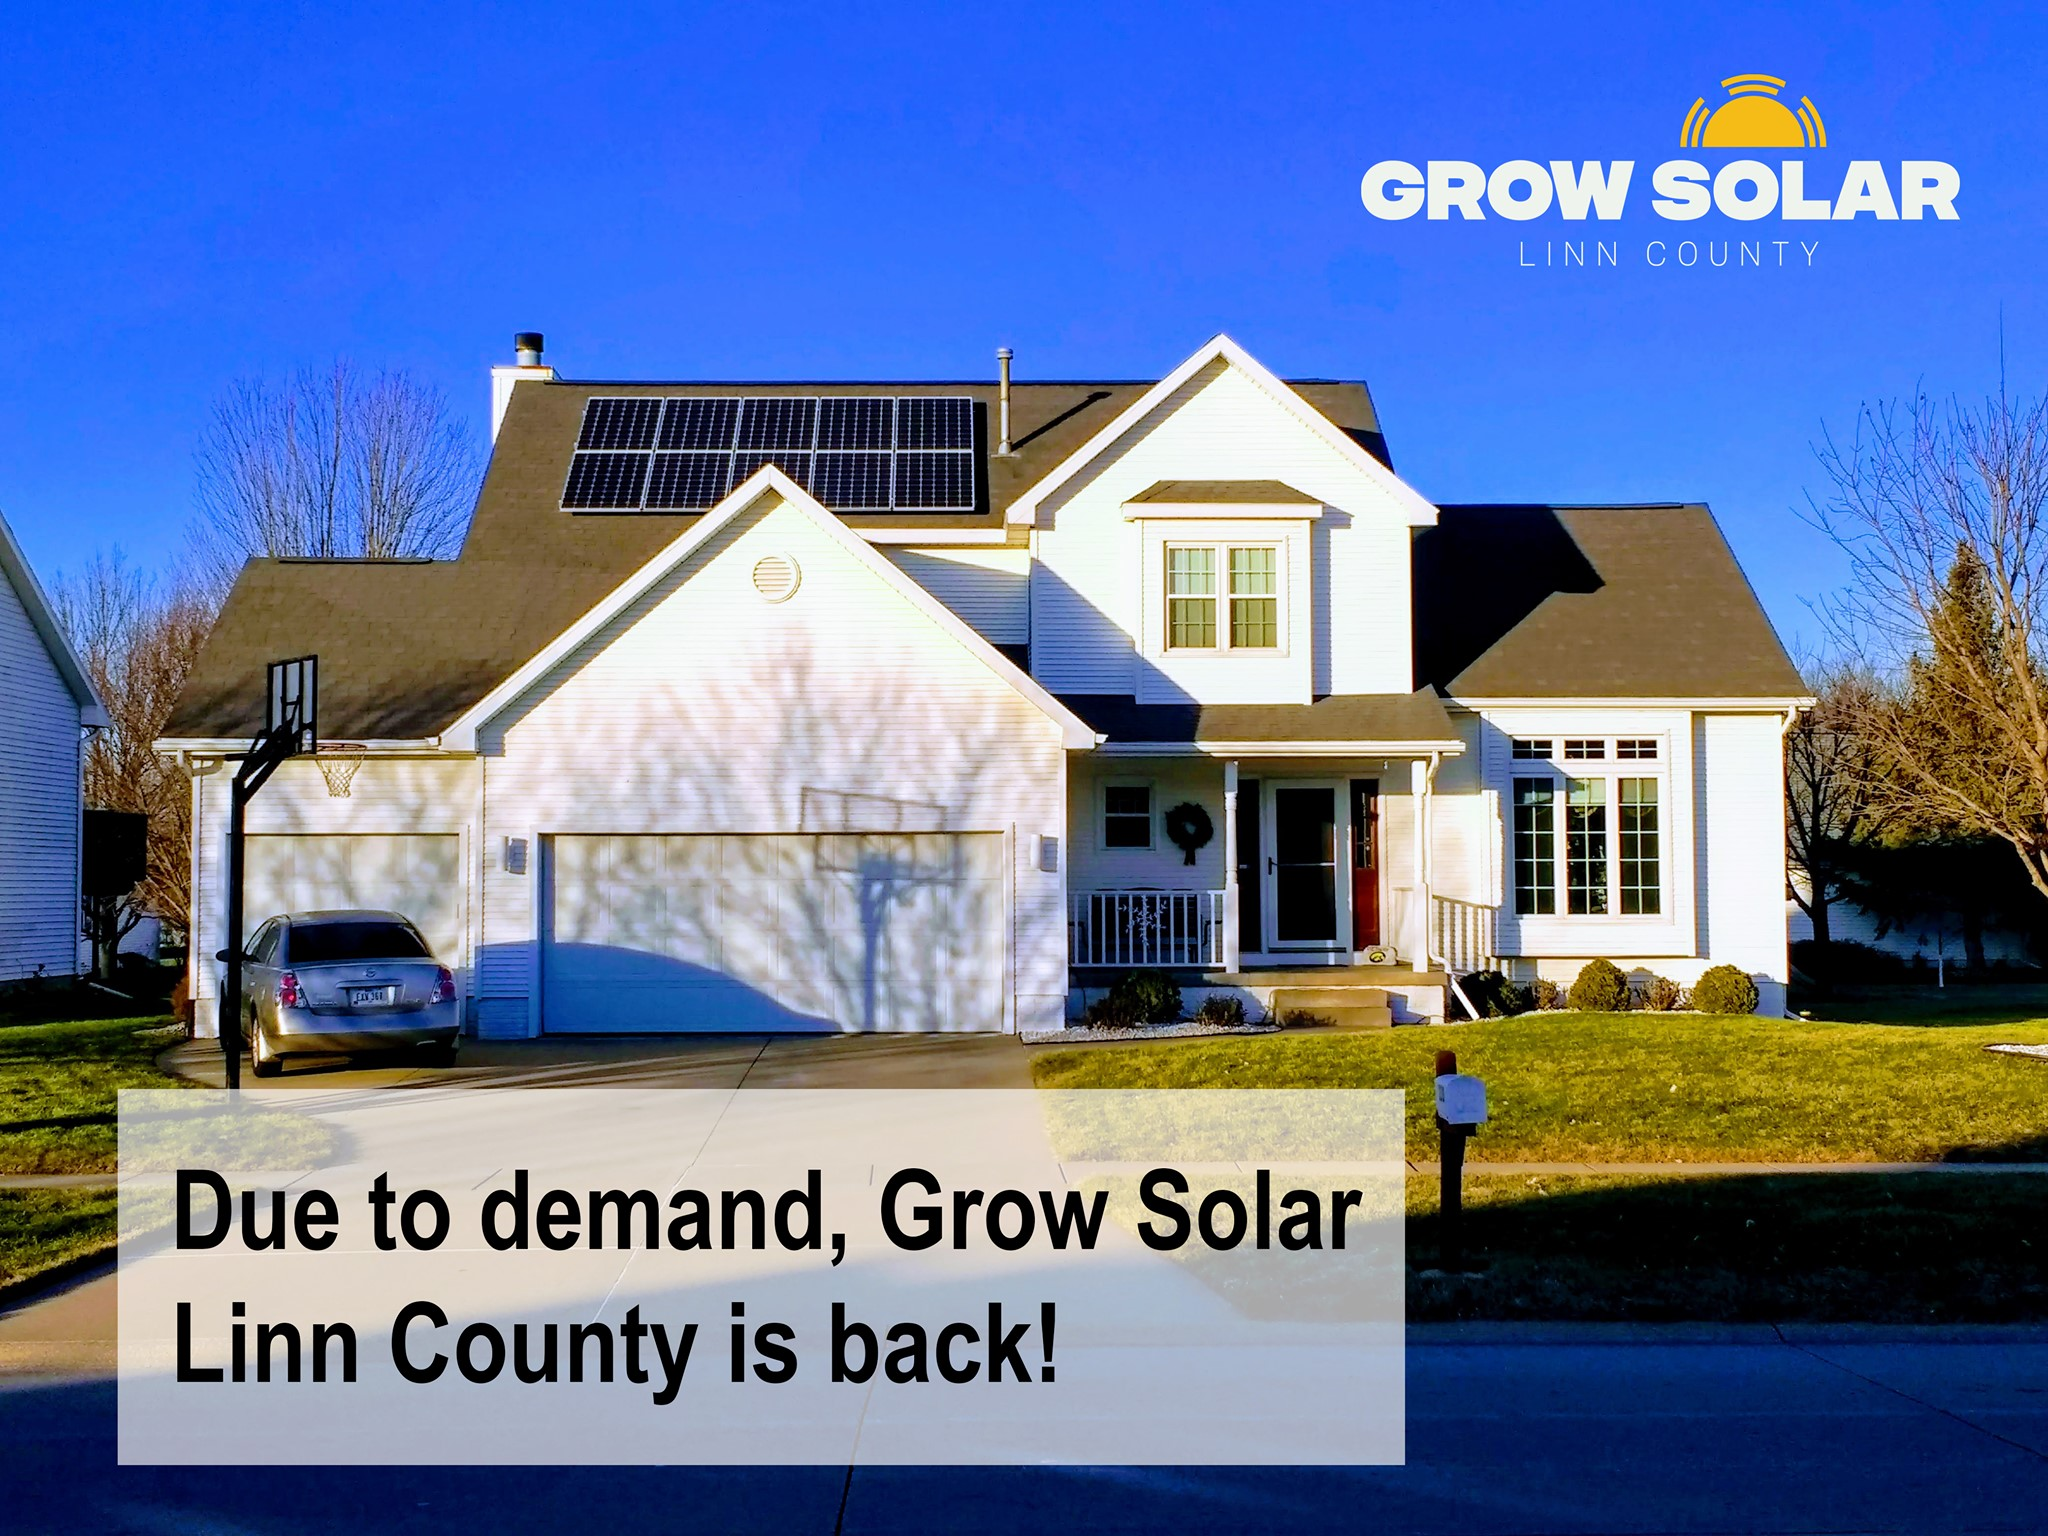 Graphic photo for Grow Solar Lin County